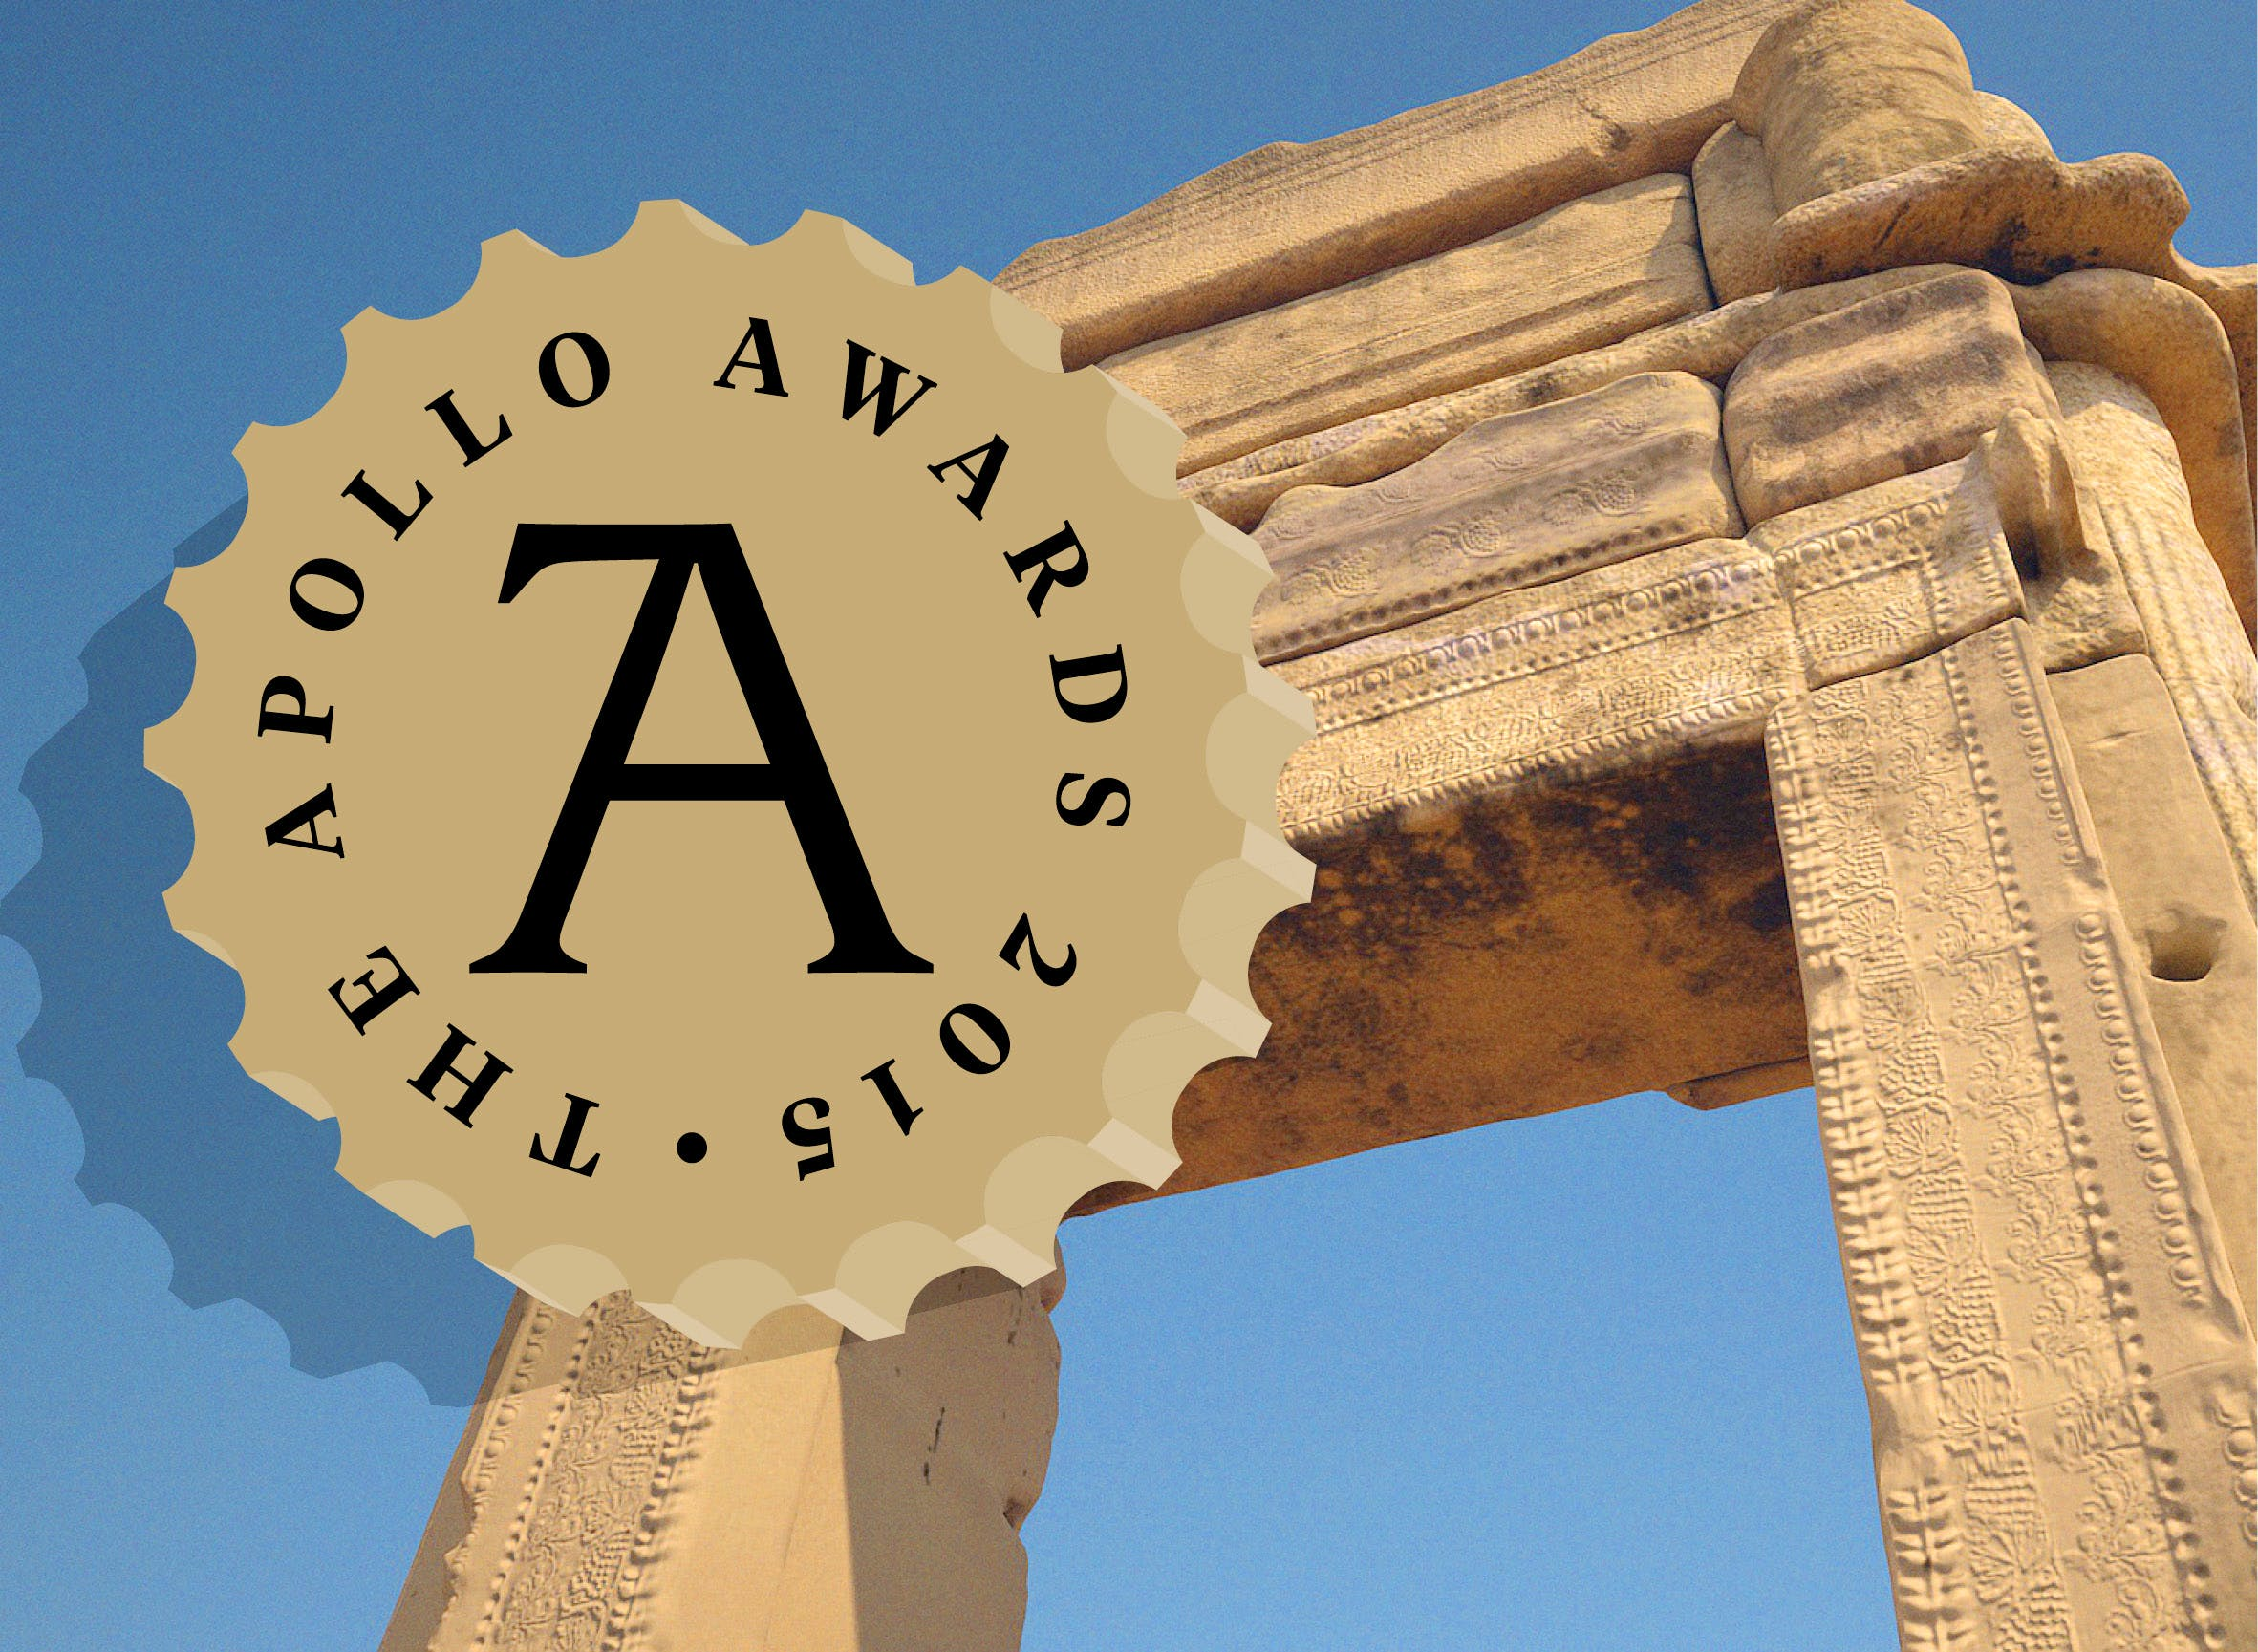 Apollo Awards: Digital Innovation of the Year: Million Image Database